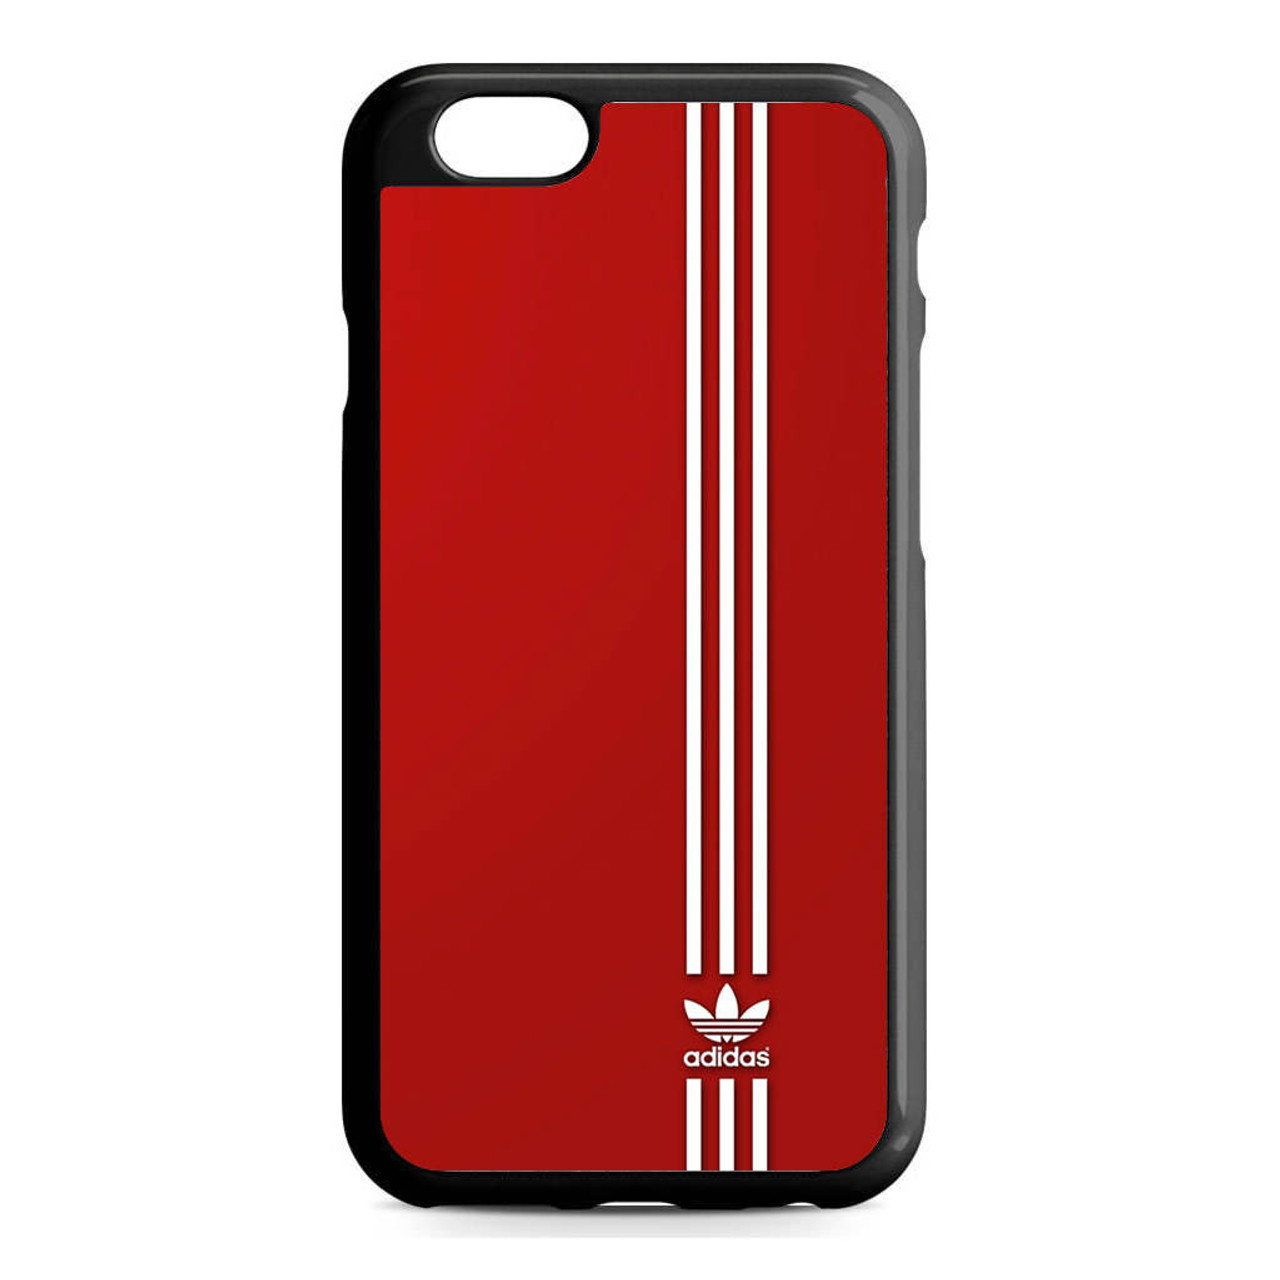 detailed look 3b1c9 e8a60 Brand Adidas Red White Sport iPhone 6/6S Case